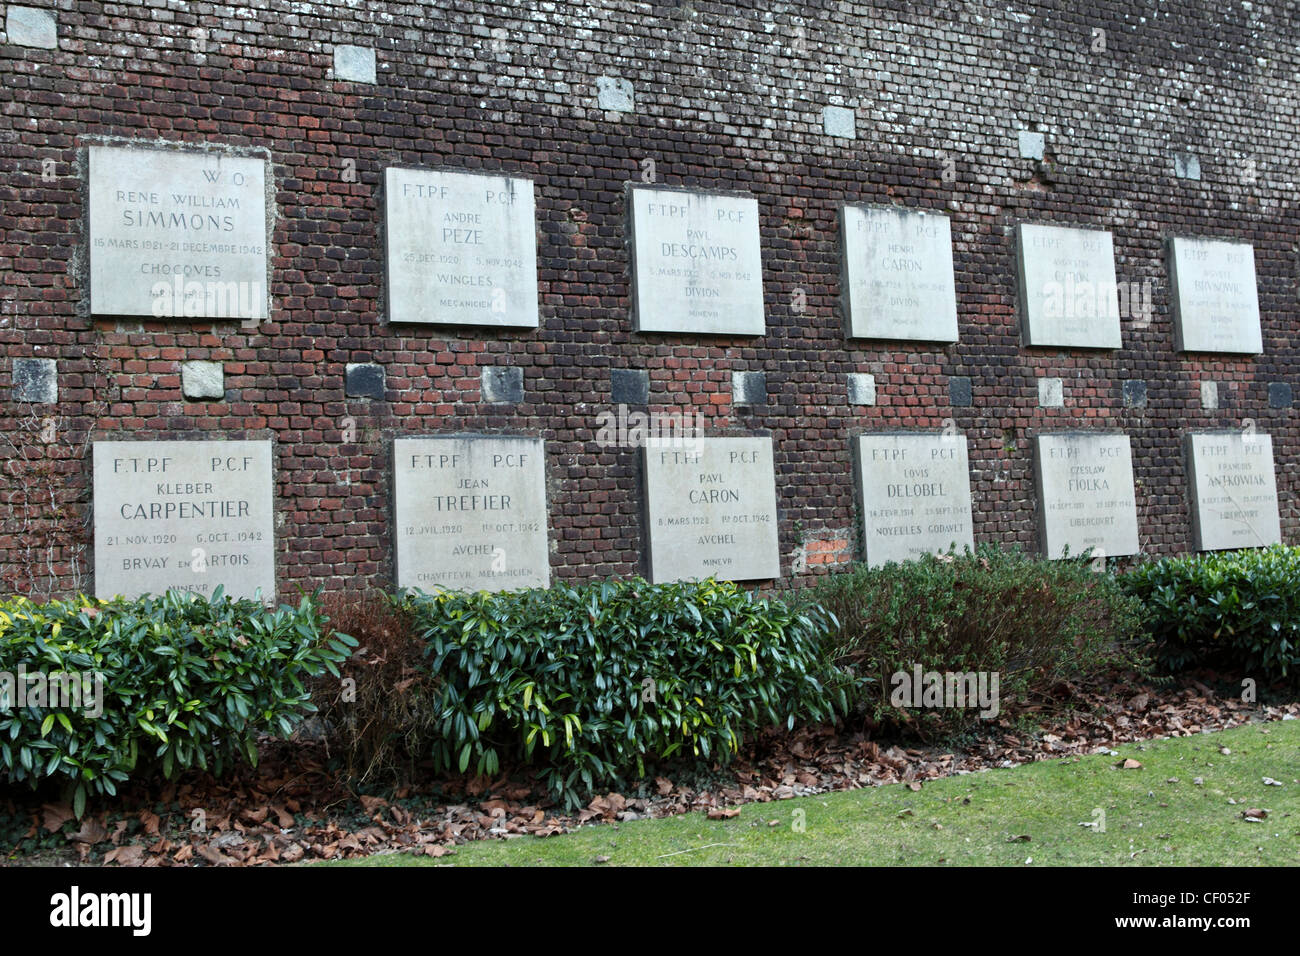 Plaques at the Resistance Memorial at the Citadel of Arras, France. - Stock Image